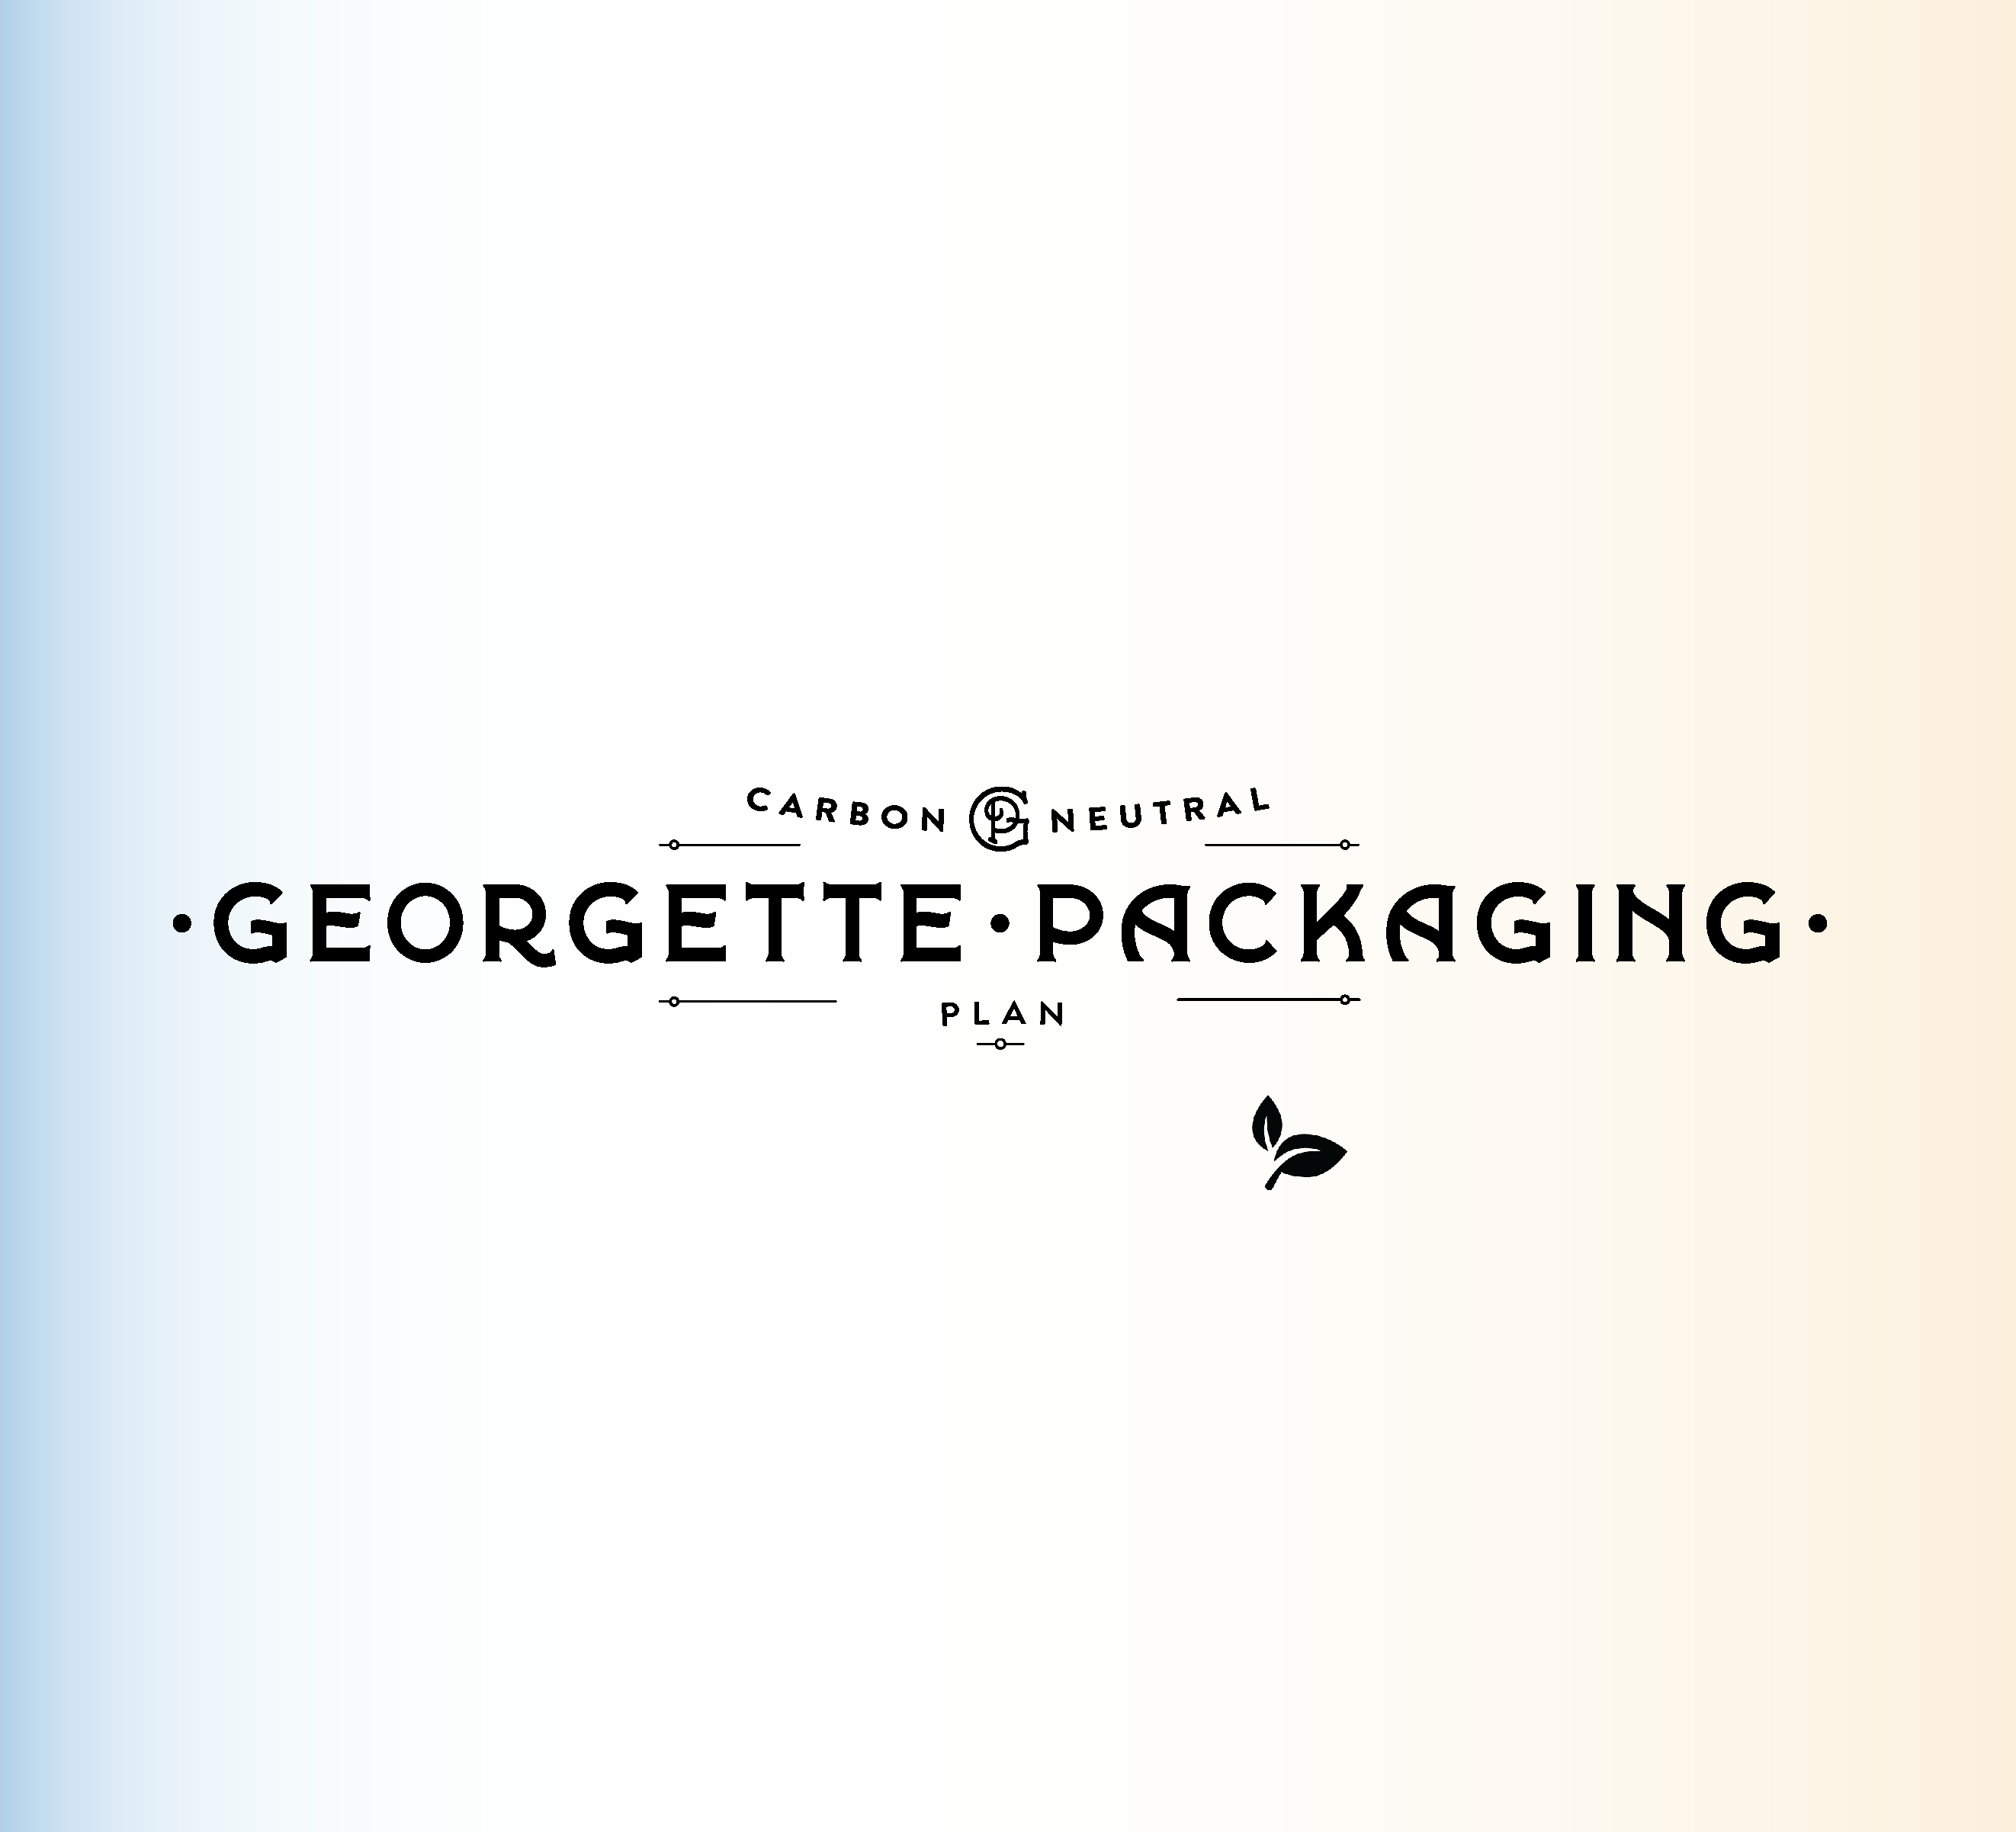 Carbon Neutral Packaging Georgette Packaging